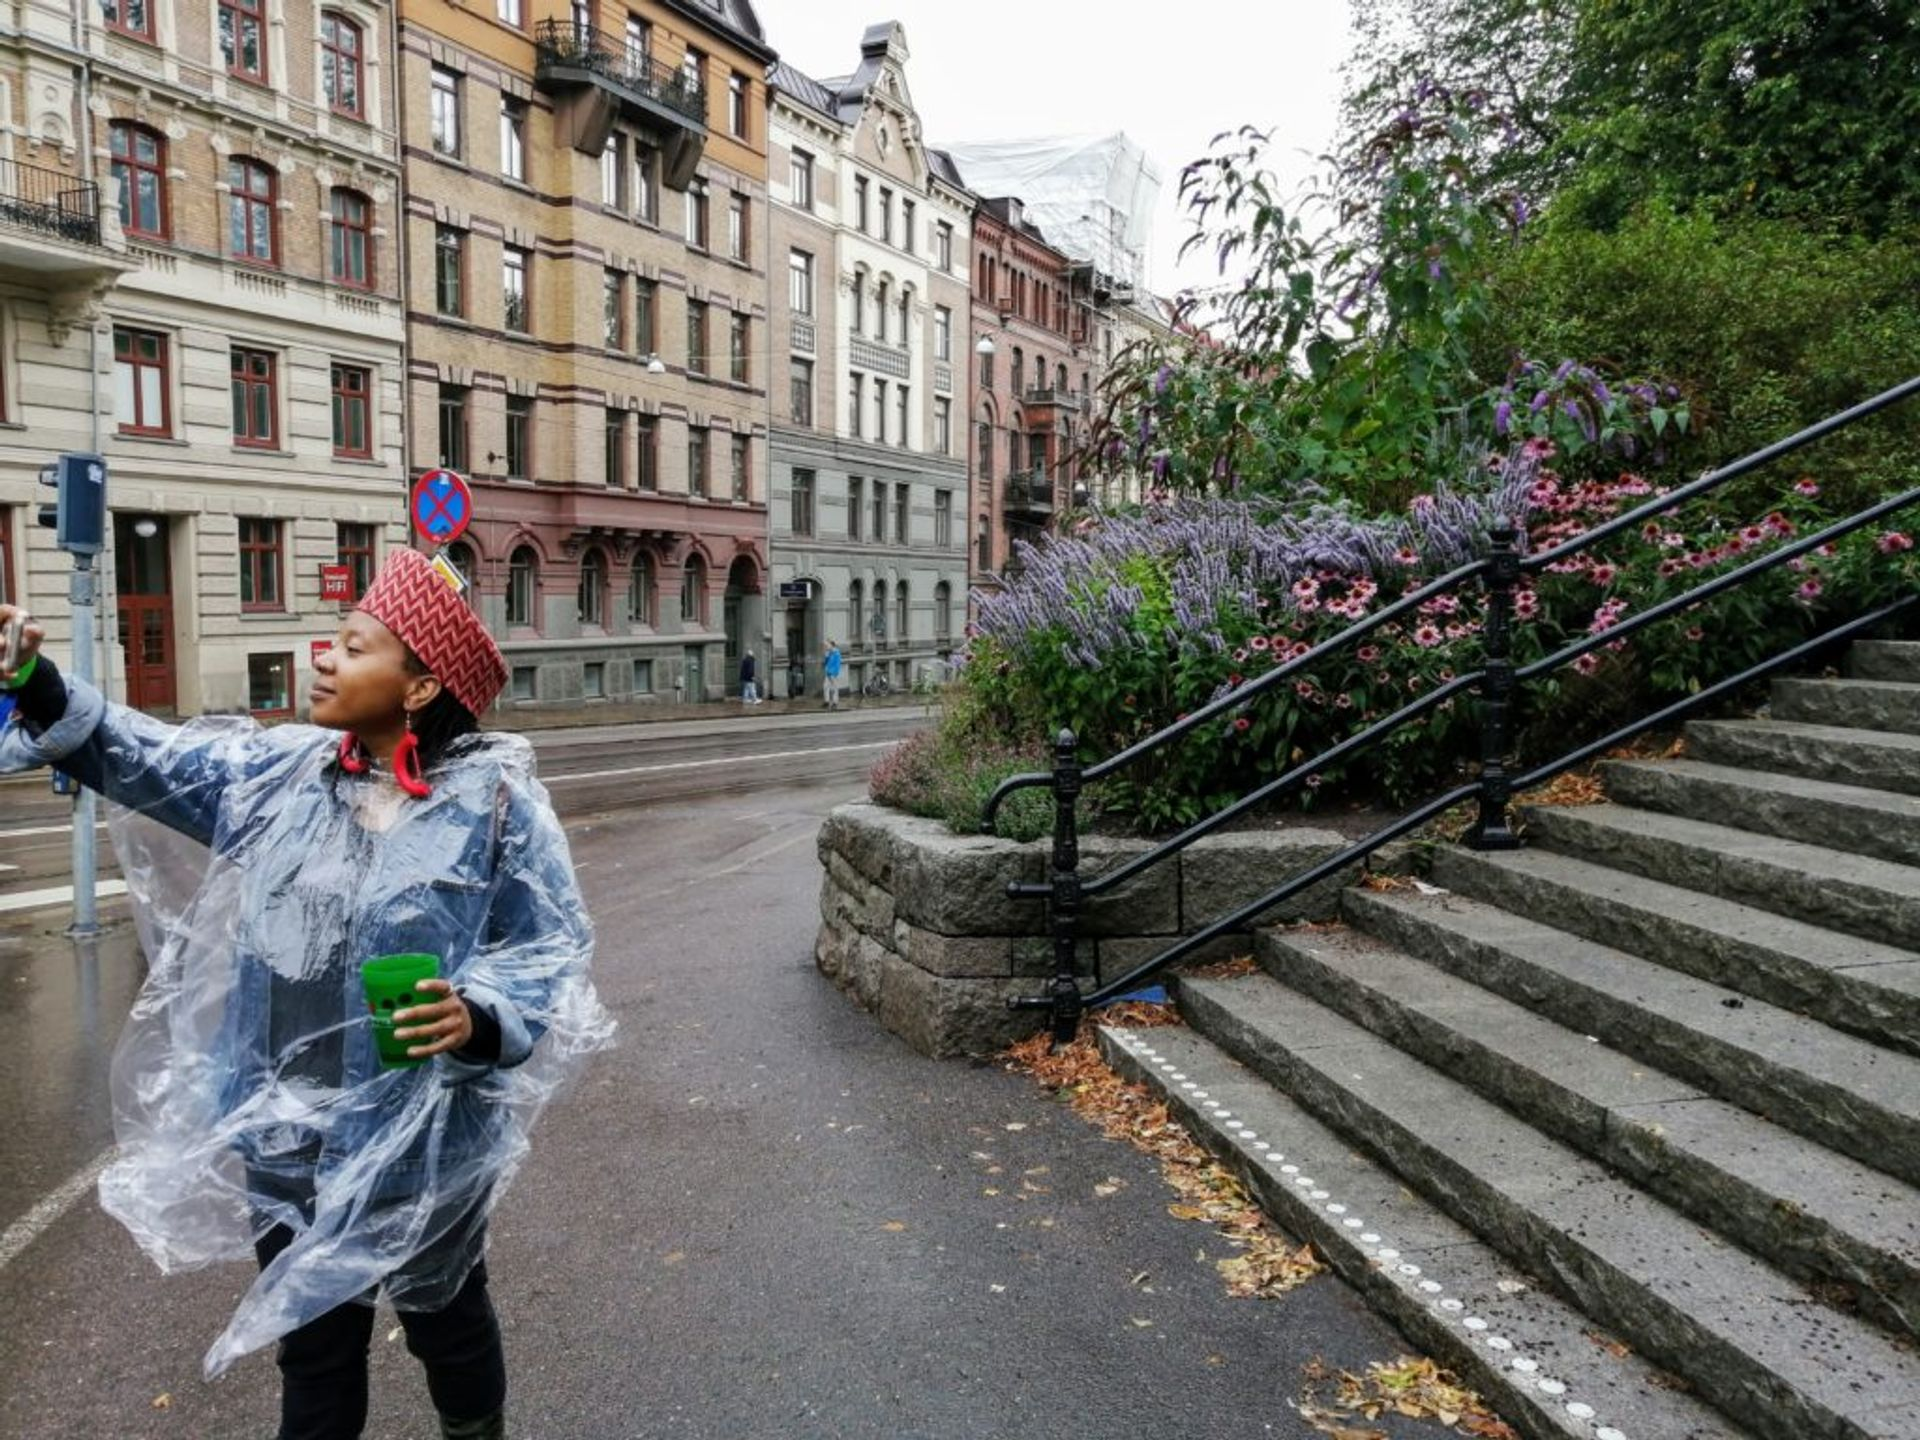 Nthupula taking a rainy selfie in front of a park in Gothenburg